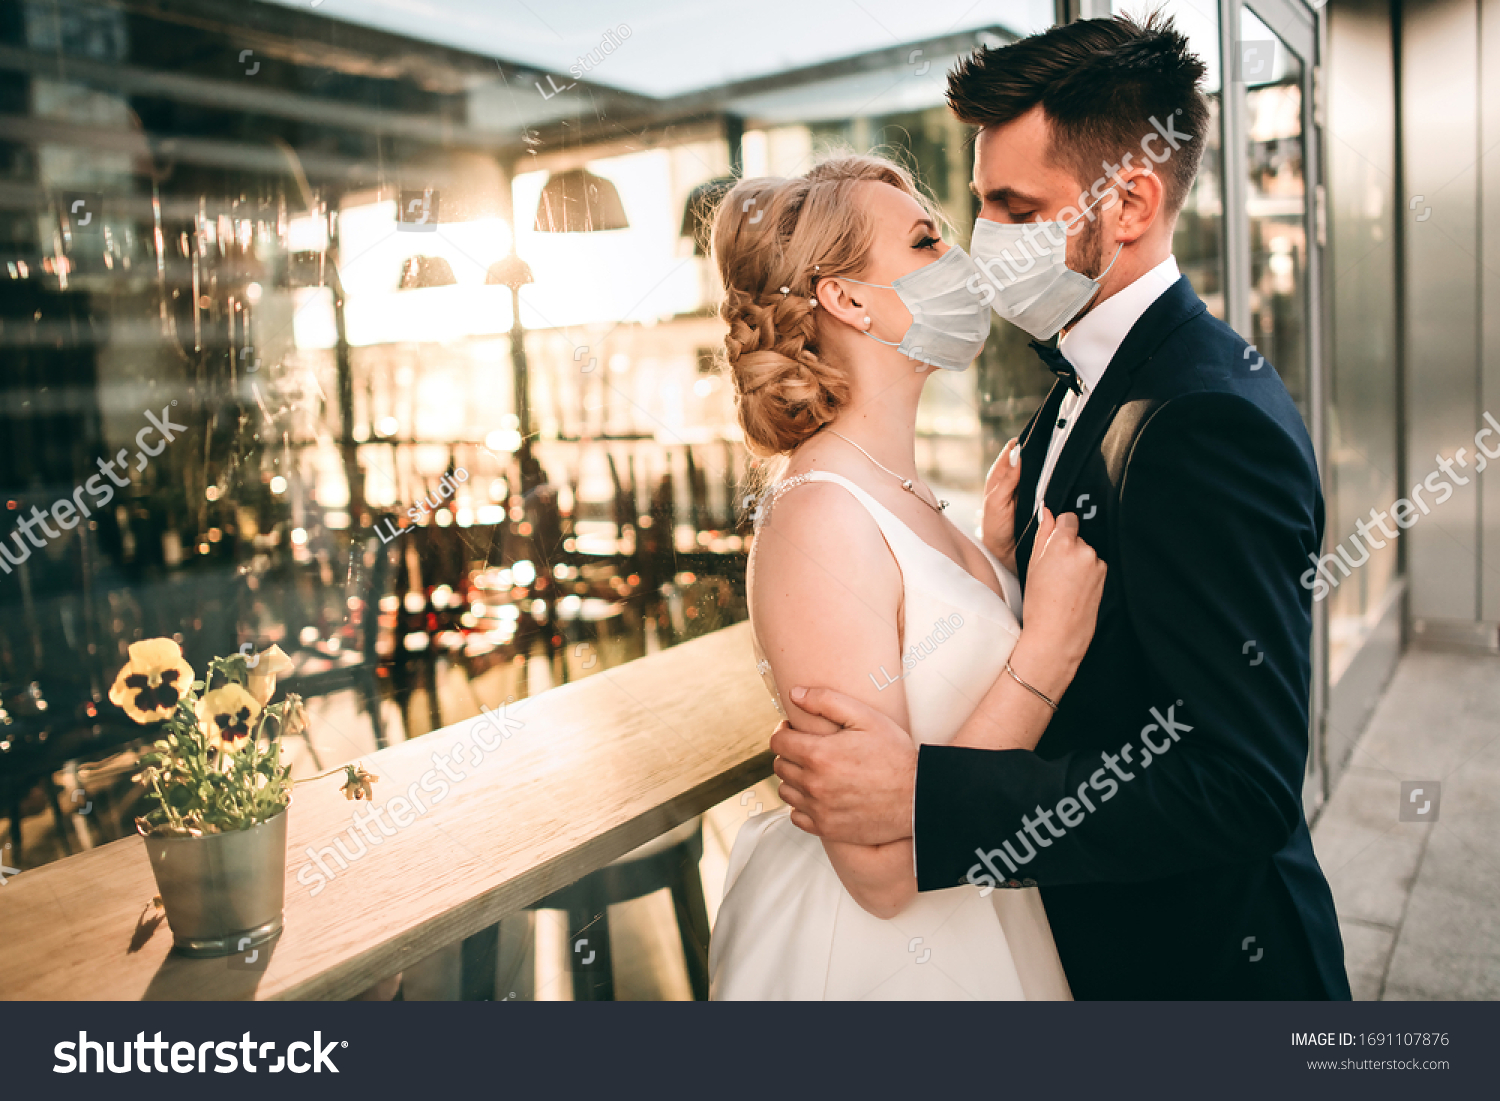 Young loving brides walking in modern city medical masks during quarantine on their wedding day. Coronavirus, disease, protection, sick, illness flu europe celebration canceled, surgical protective #1691107876